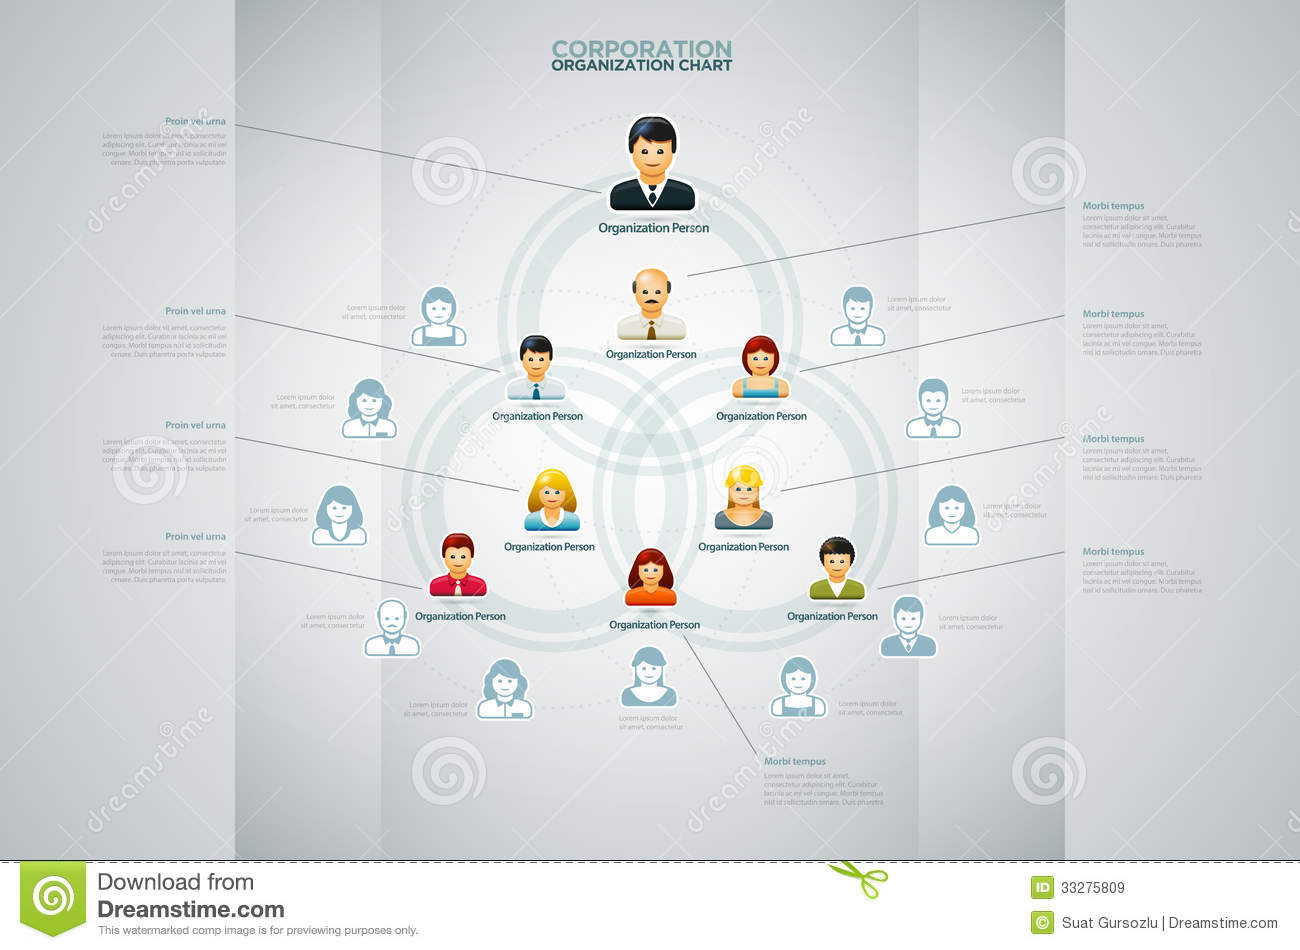 organization chart royalty free stock images